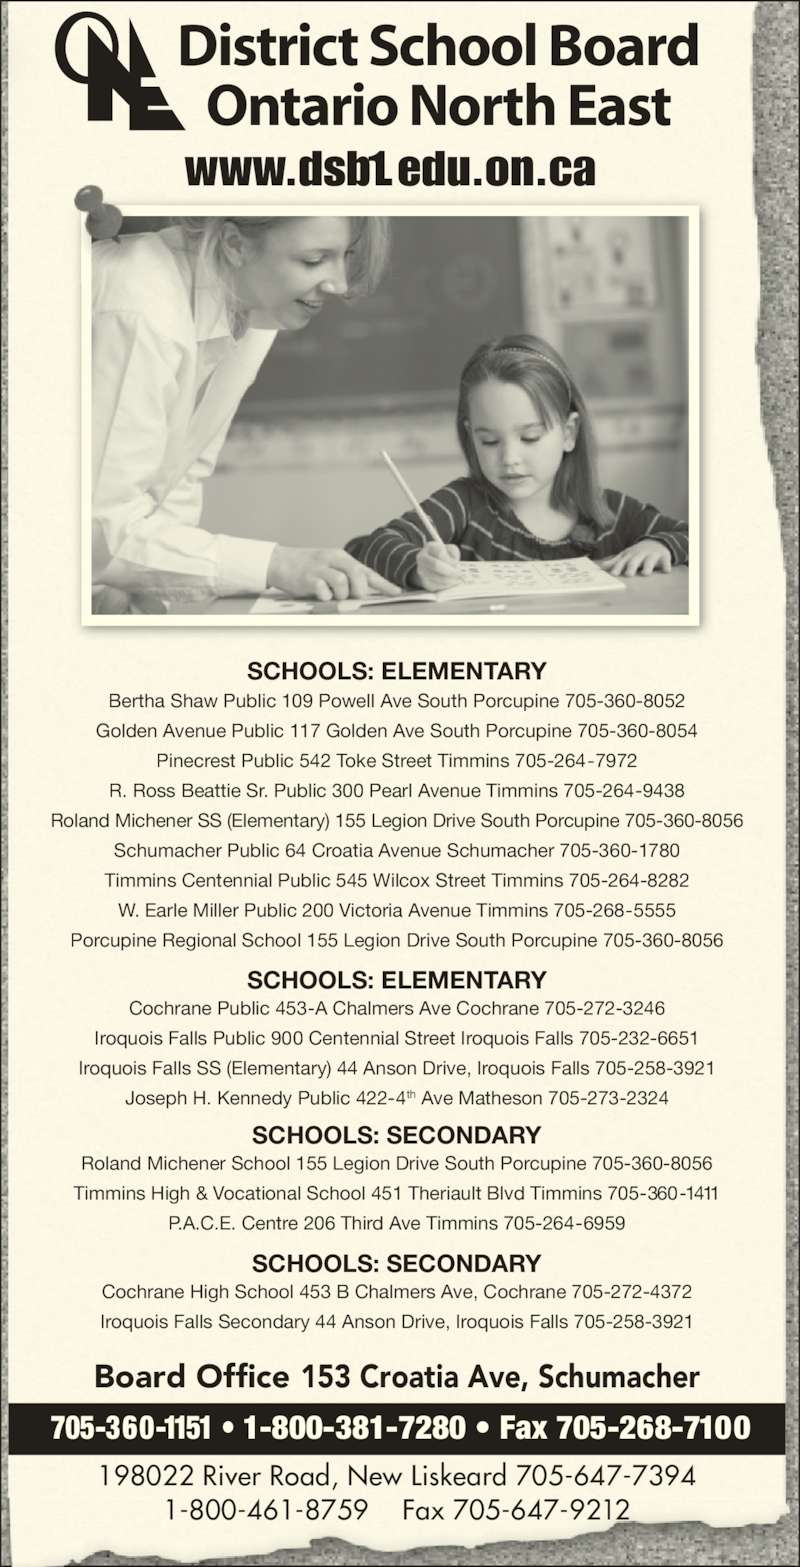 District School Board Ontario North East (705-360-1151) - Display Ad - SCHOOLS: SECONDARY Cochrane High School 453 B Chalmers Ave, Cochrane 705-272-4372 Iroquois Falls Secondary 44 Anson Drive, Iroquois Falls 705-258-3921 SCHOOLS: SECONDARY Roland Michener School 155 Legion Drive South Porcupine 705-360-8056 Timmins High & Vocational School 451 Theriault Blvd Timmins 705-360-1411 P.A.C.E. Centre 206 Third Ave Timmins 705-264-6959 SCHOOLS: ELEMENTARY Cochrane Public 453-A Chalmers Ave Cochrane 705-272-3246 Iroquois Falls Public 900 Centennial Street Iroquois Falls 705-232-6651 Iroquois Falls SS (Elementary) 44 Anson Drive, Iroquois Falls 705-258-3921 Joseph H. Kennedy Public 422-4th Ave Matheson 705-273-2324 SCHOOLS: ELEMENTARY Bertha Shaw Public 109 Powell Ave South Porcupine 705-360-8052 Golden Avenue Public 117 Golden Ave South Porcupine 705-360-8054 Pinecrest Public 542 Toke Street Timmins 705-264-7972 R. Ross Beattie Sr. Public 300 Pearl Avenue Timmins 705-264-9438 Roland Michener SS (Elementary) 155 Legion Drive South Porcupine 705-360-8056 Schumacher Public 64 Croatia Avenue Schumacher 705-360-1780 Timmins Centennial Public 545 Wilcox Street Timmins 705-264-8282 W. Earle Miller Public 200 Victoria Avenue Timmins 705-268-5555 Porcupine Regional School 155 Legion Drive South Porcupine 705-360-8056 www.dsb1.edu.on.ca District School Board Ontario North East Board Office 153 Croatia Ave, Schumacher 705-360-1151 • 1-800-381-7280 • Fax 705-268-7100 198022 River Road, New Liskeard 705-647-7394 1-800-461-8759    Fax 705-647-9212